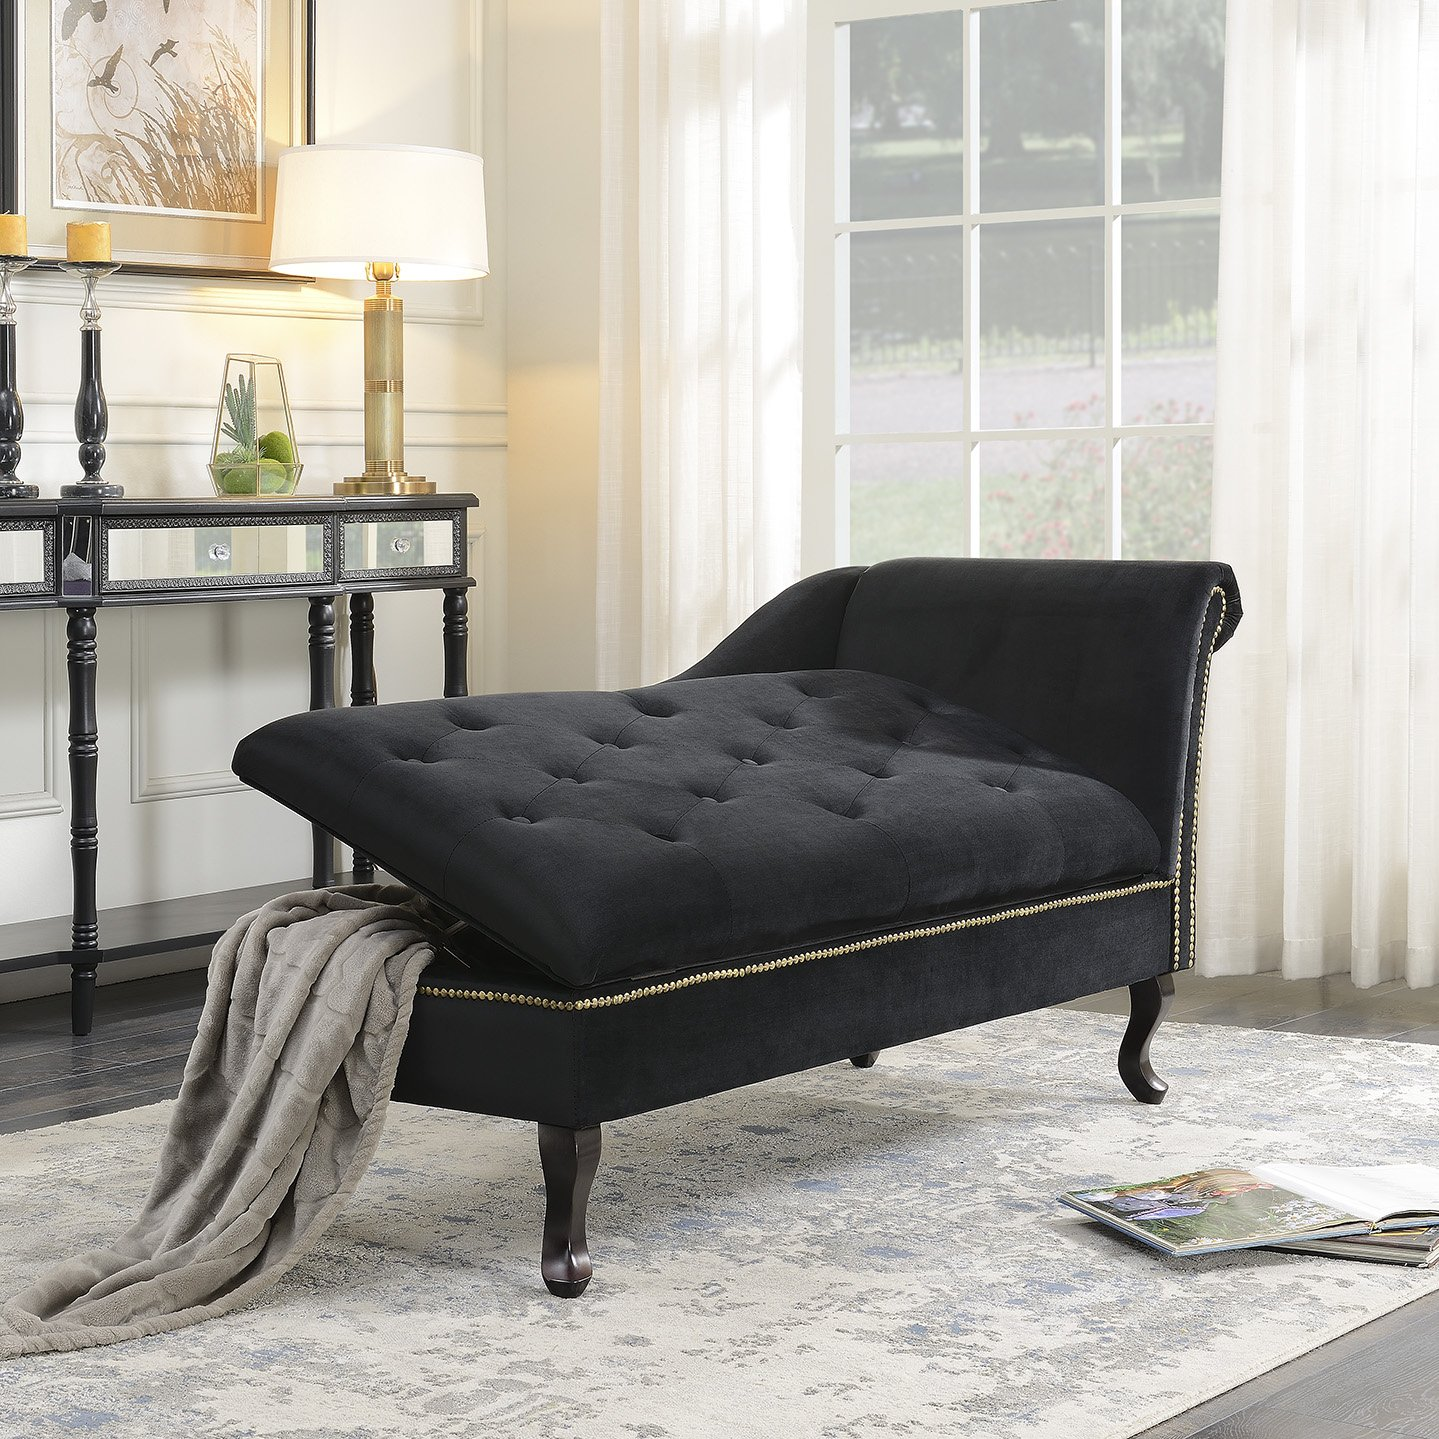 Black Belleze Velveteen Button Tufted Storage Spa Chaise Lounge Chiar Couch for Bedroom Living Room Fold Open Lid